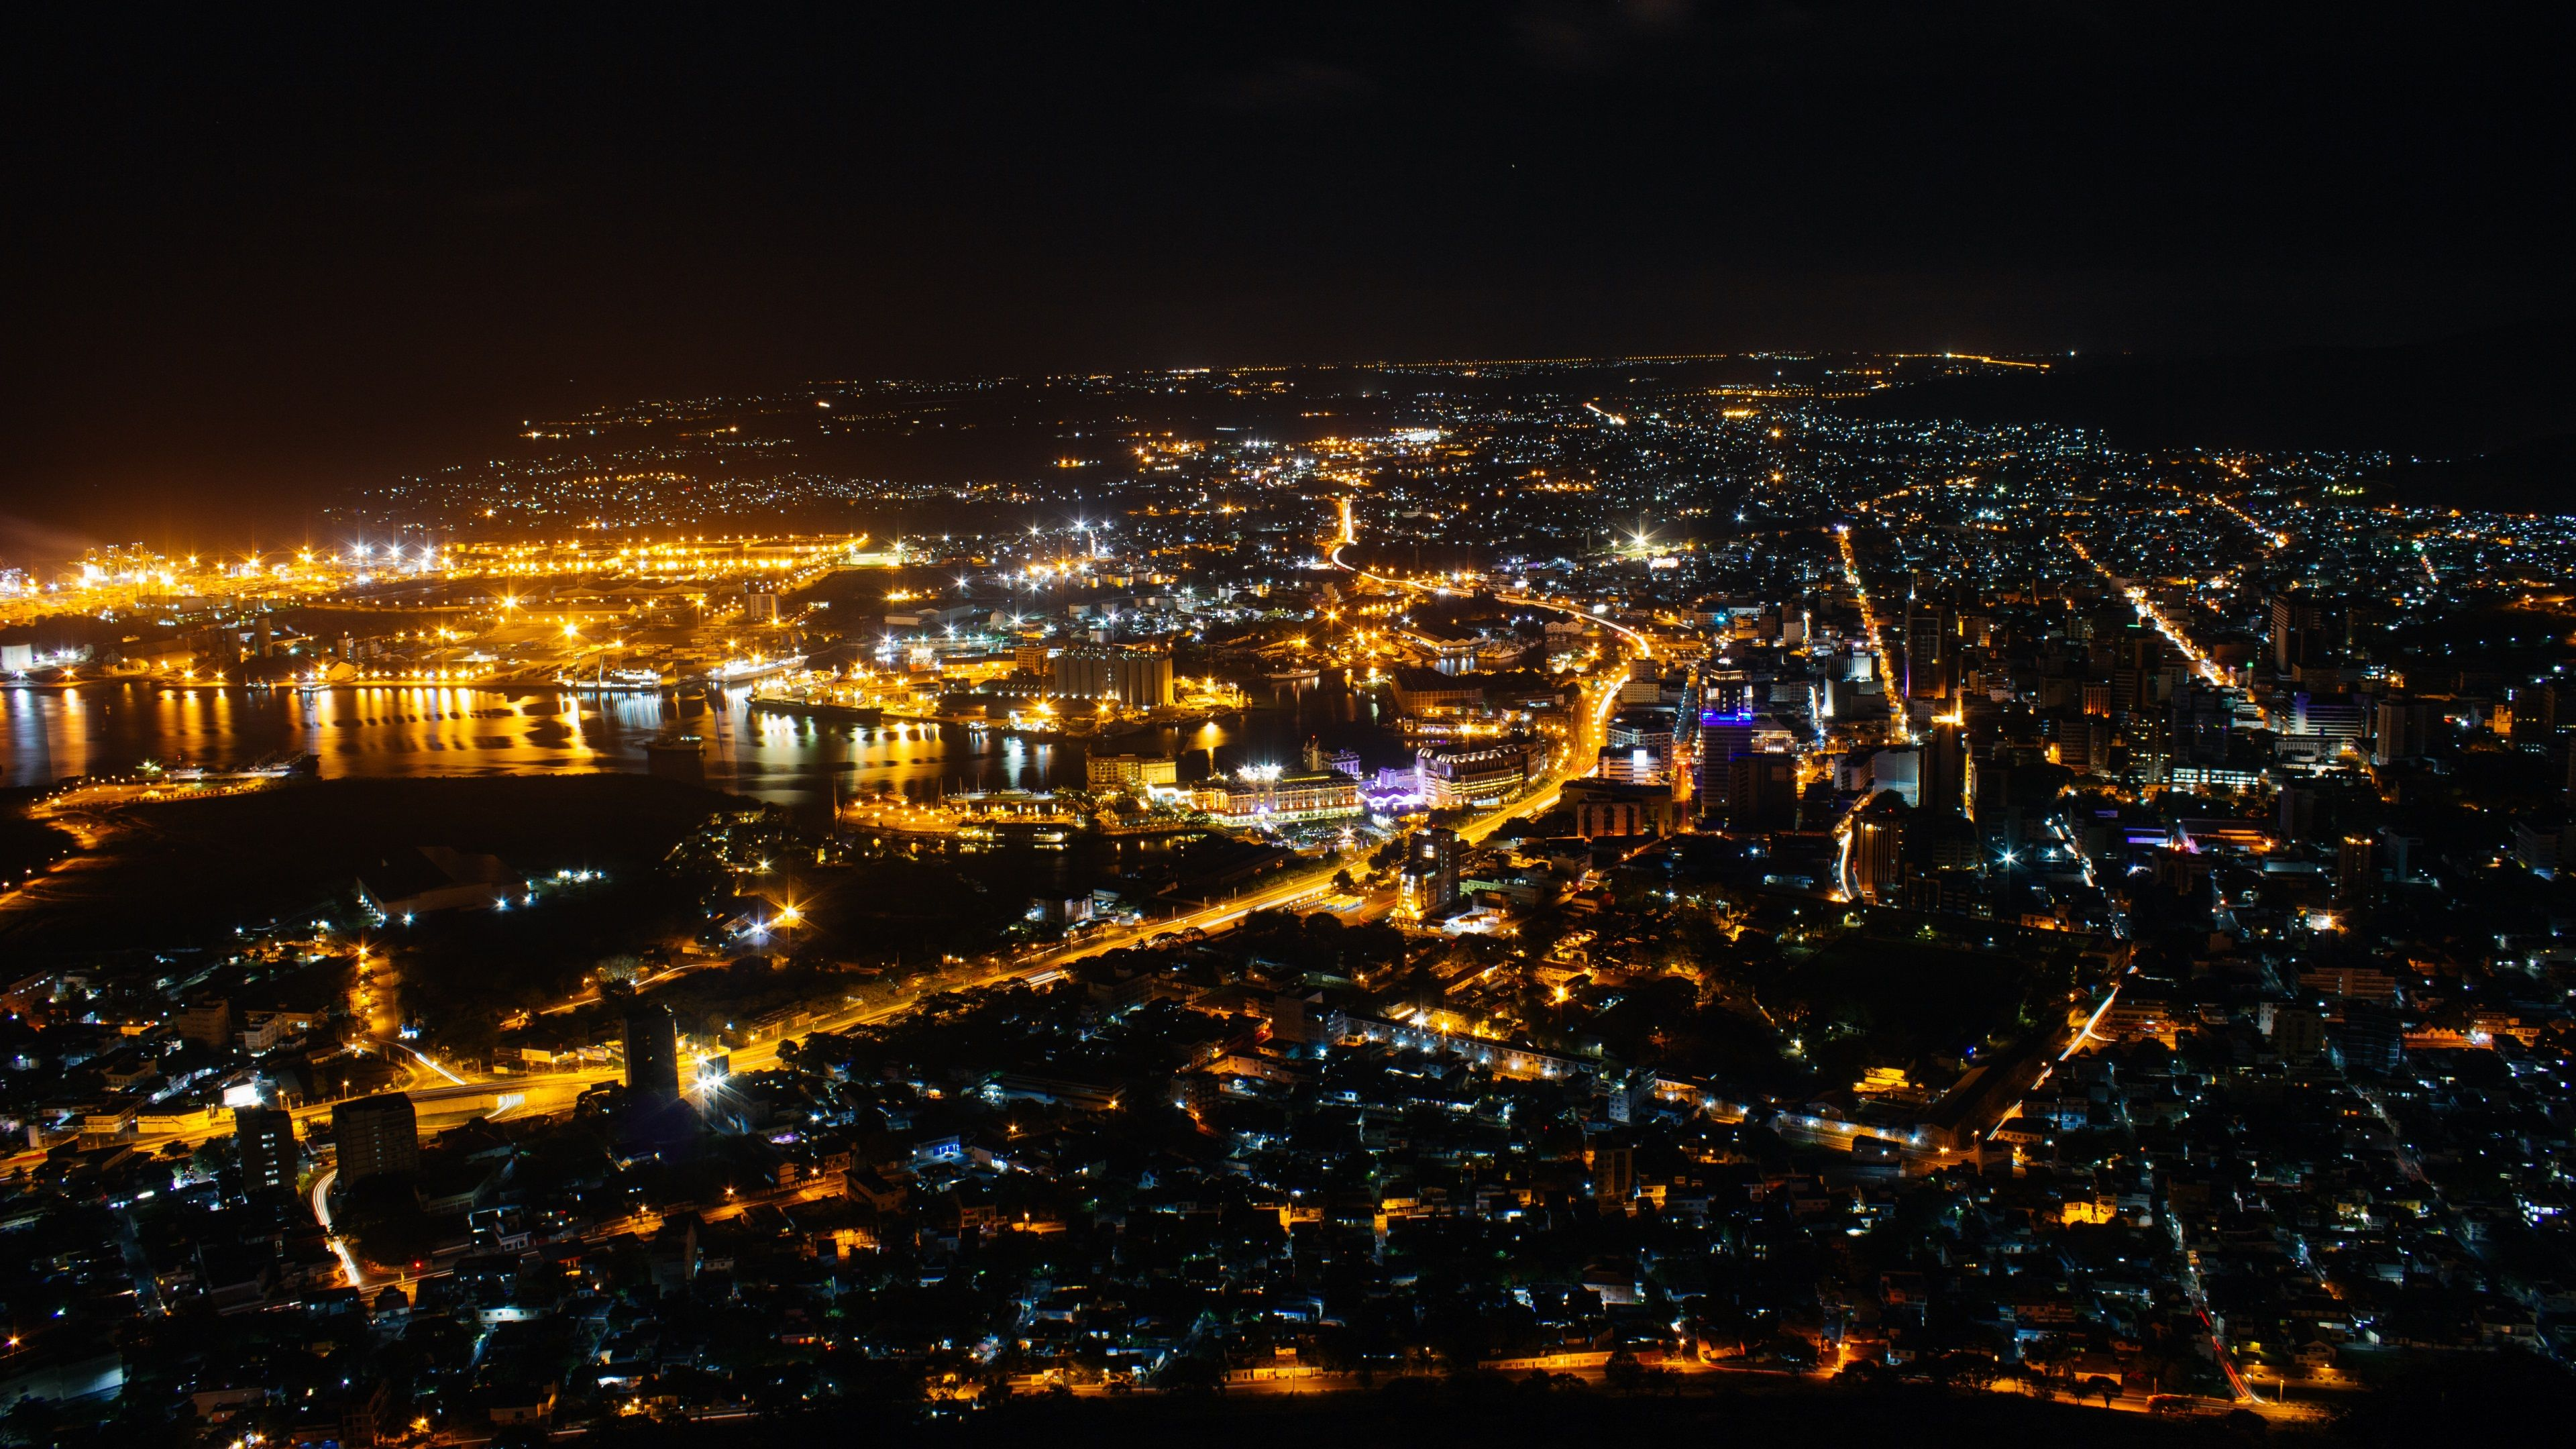 City Night Sky Wallpapers - Top Free City Night Sky